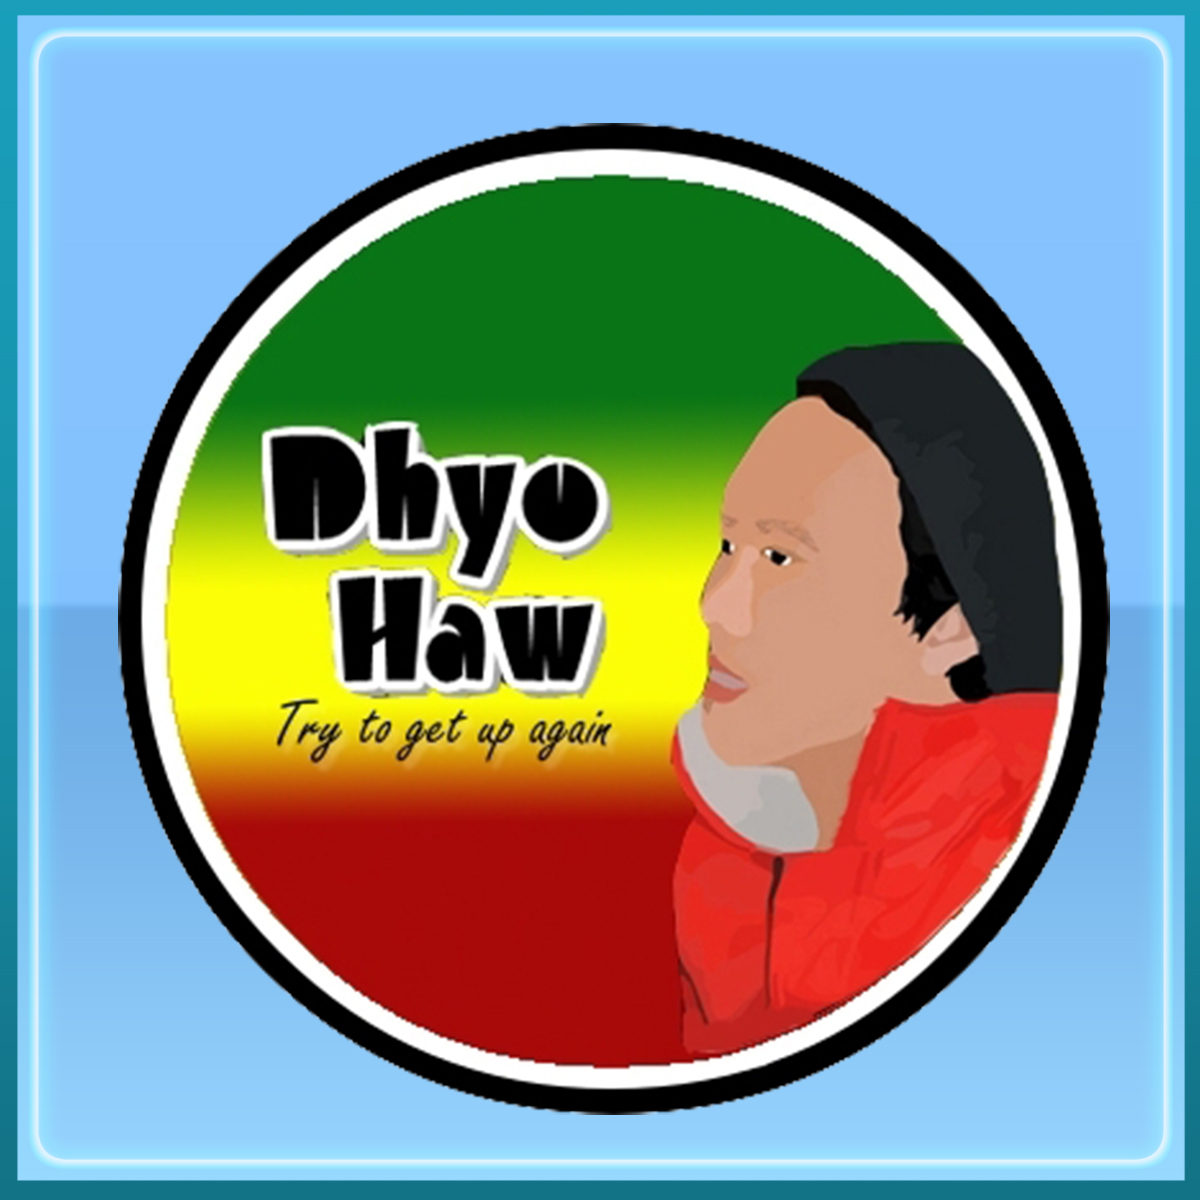 Download Lagu dhyo Haw 1 Album 2010